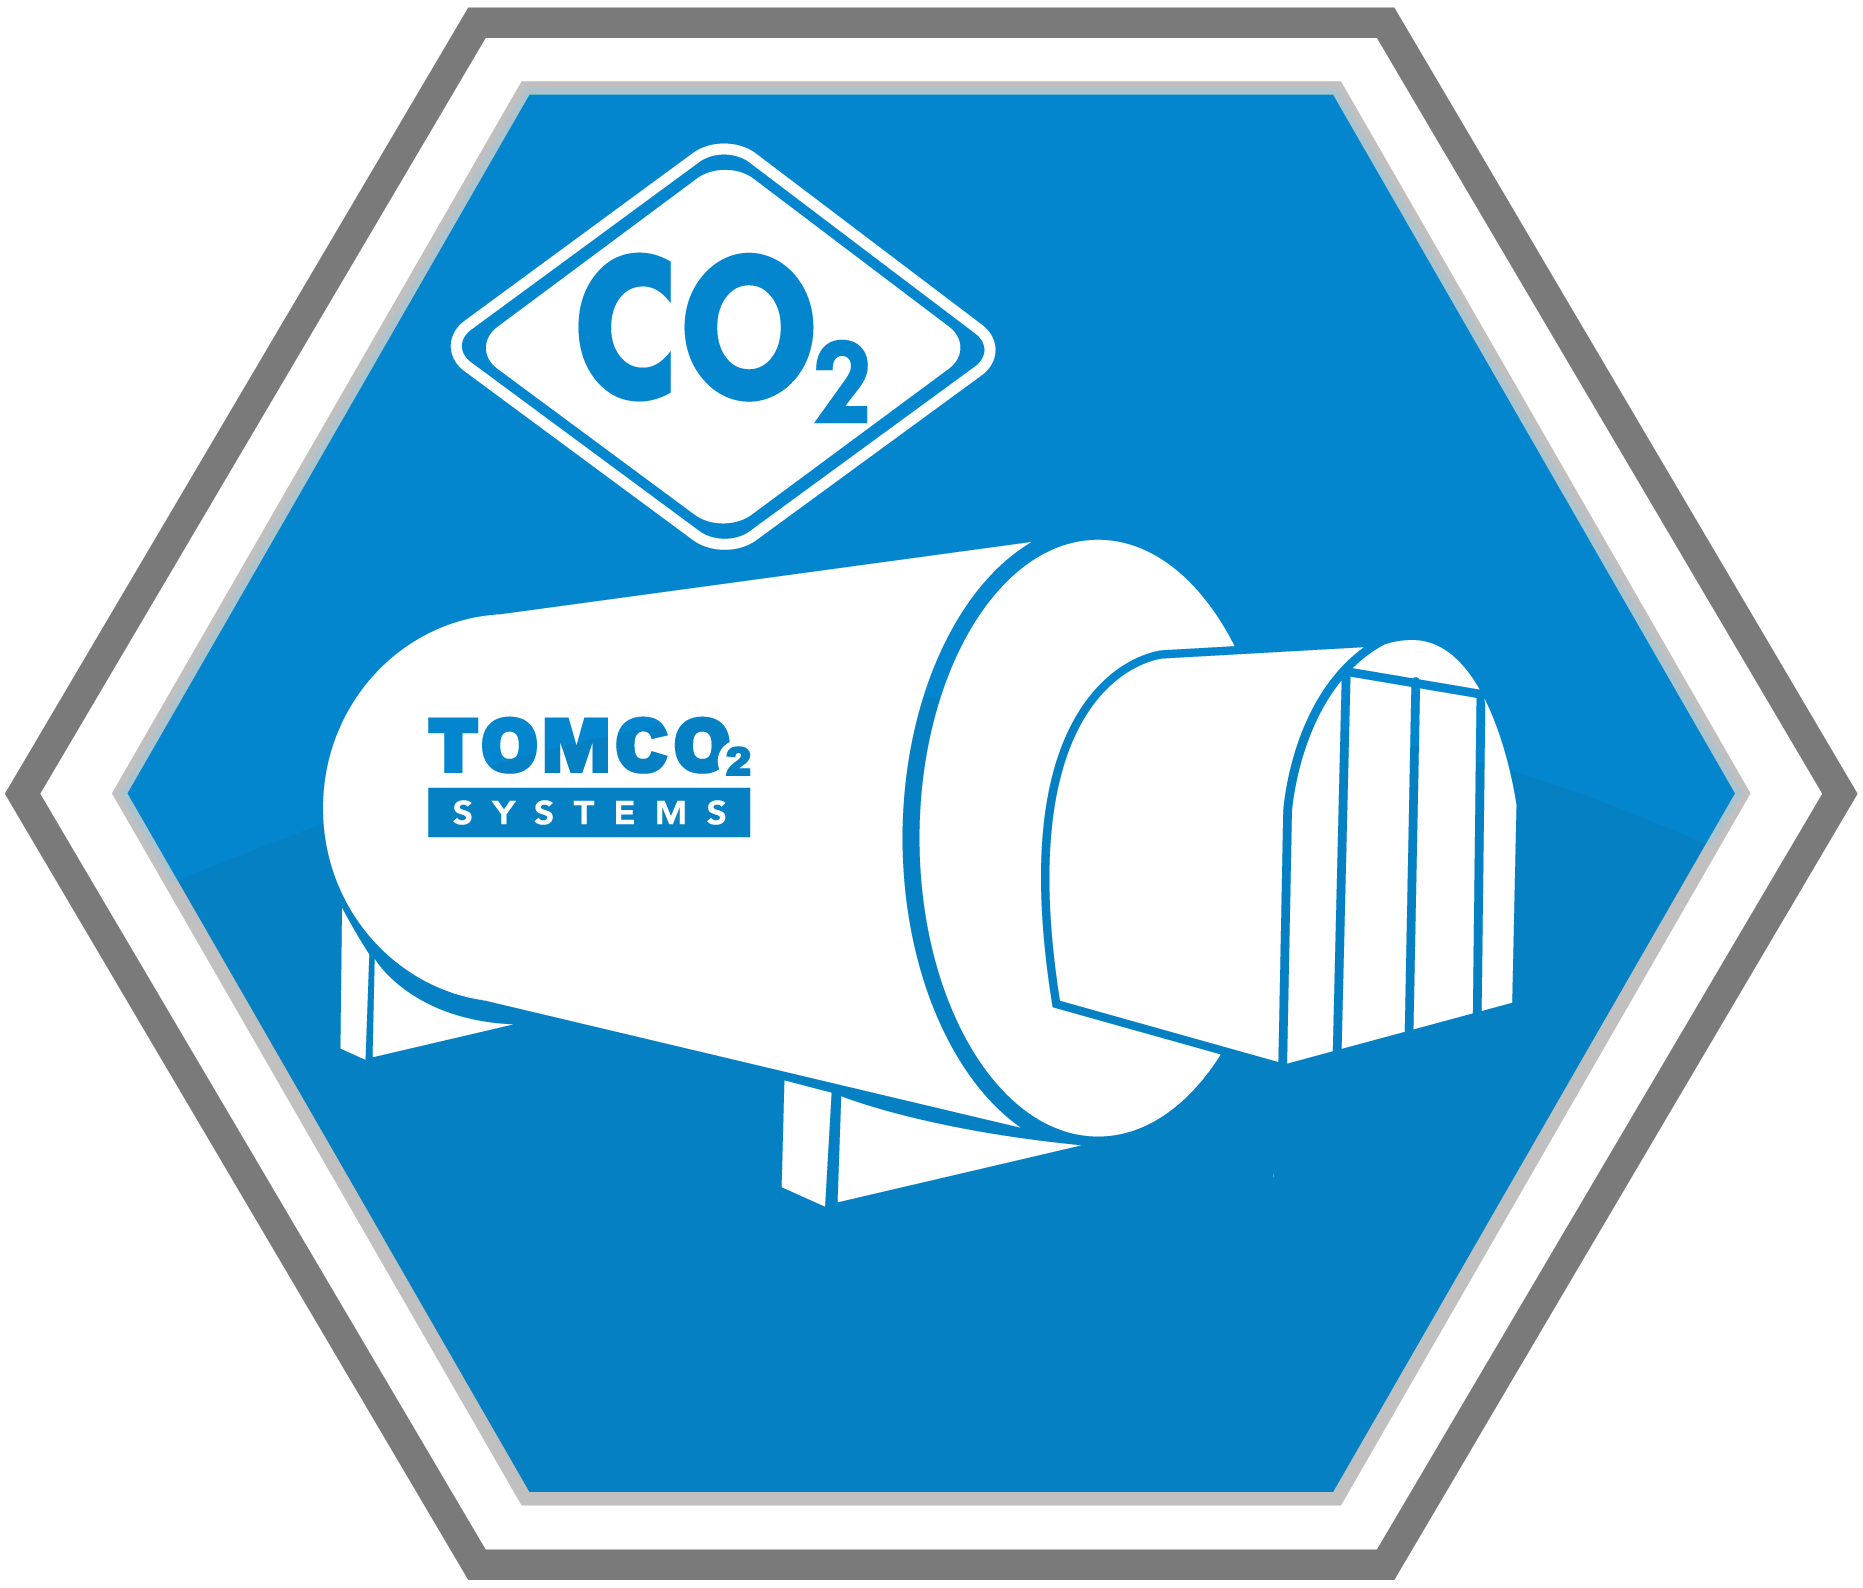 CO2 storage icon